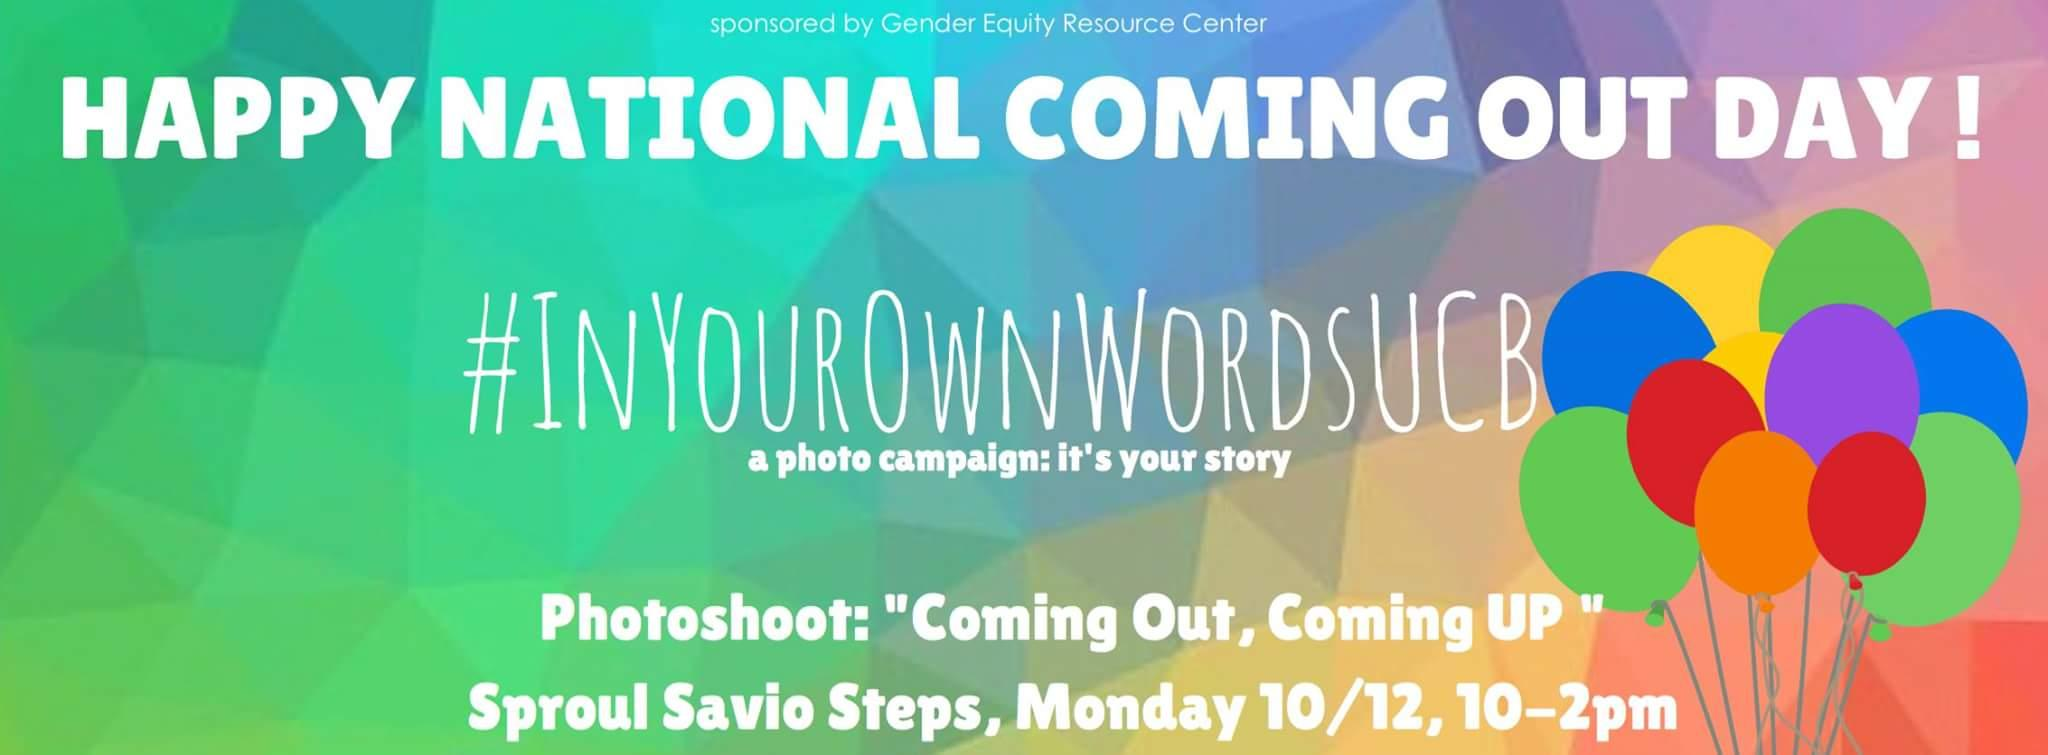 National Coming Out Day 2015 Banner